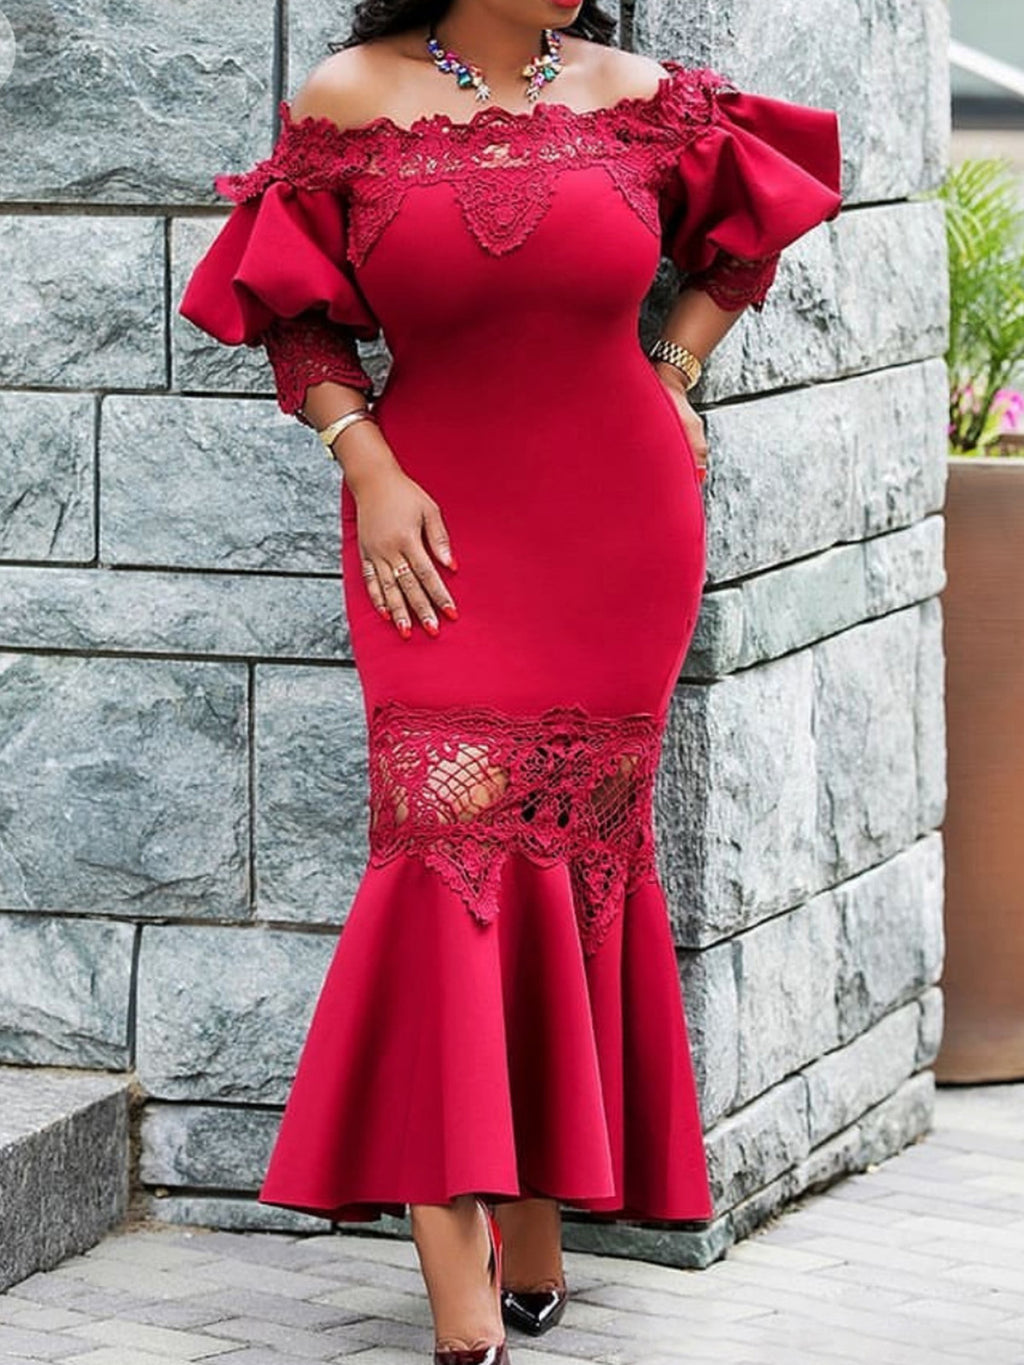 Plus Size Mesh Overlay Mermaid Half Sleeve Off Shoulder Wedding Evening Gowns Maxi Dresses Rikkishop